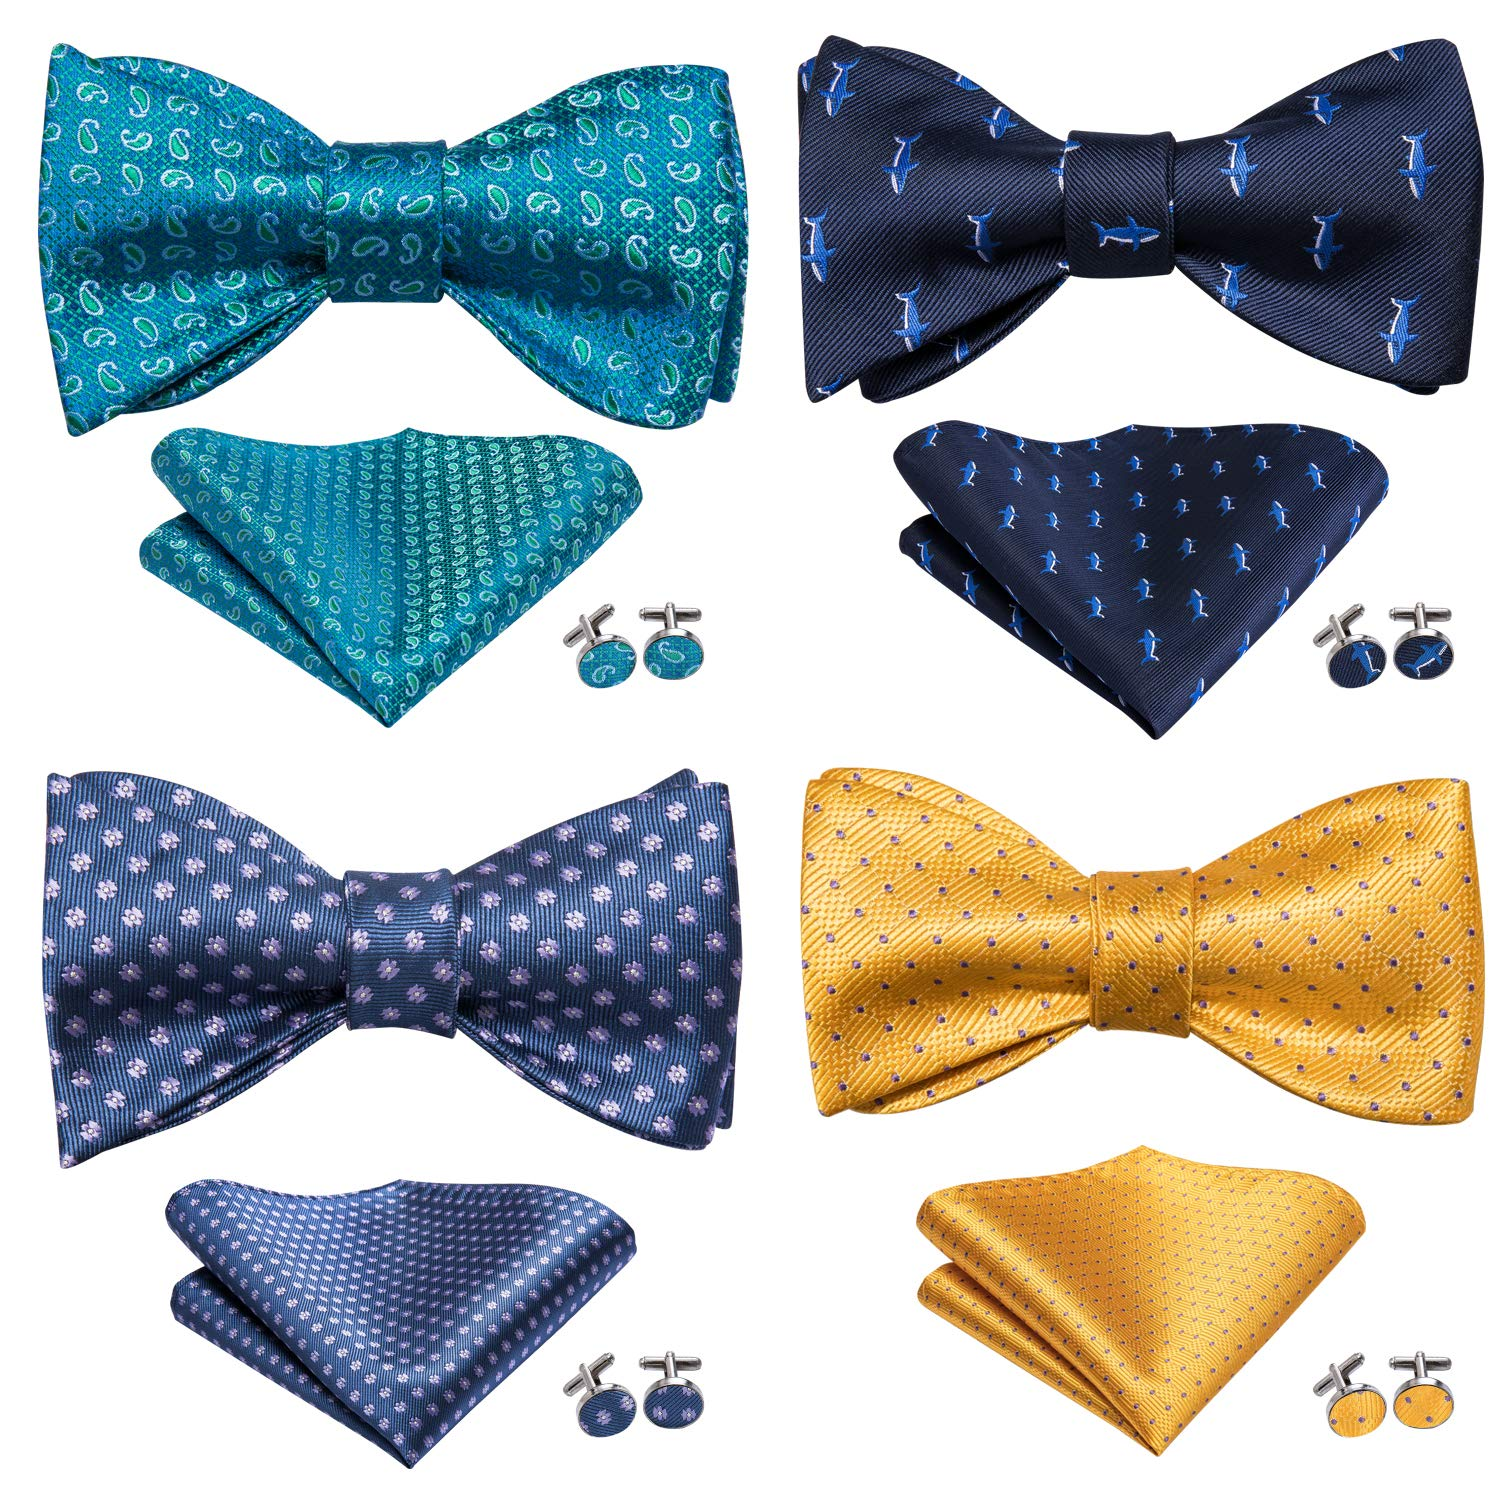 Dubulle 4 pcs Self Bow Ties for Men Bulk with Pocket Square Self Tie Bowtie and Cufflinks in Gift Box